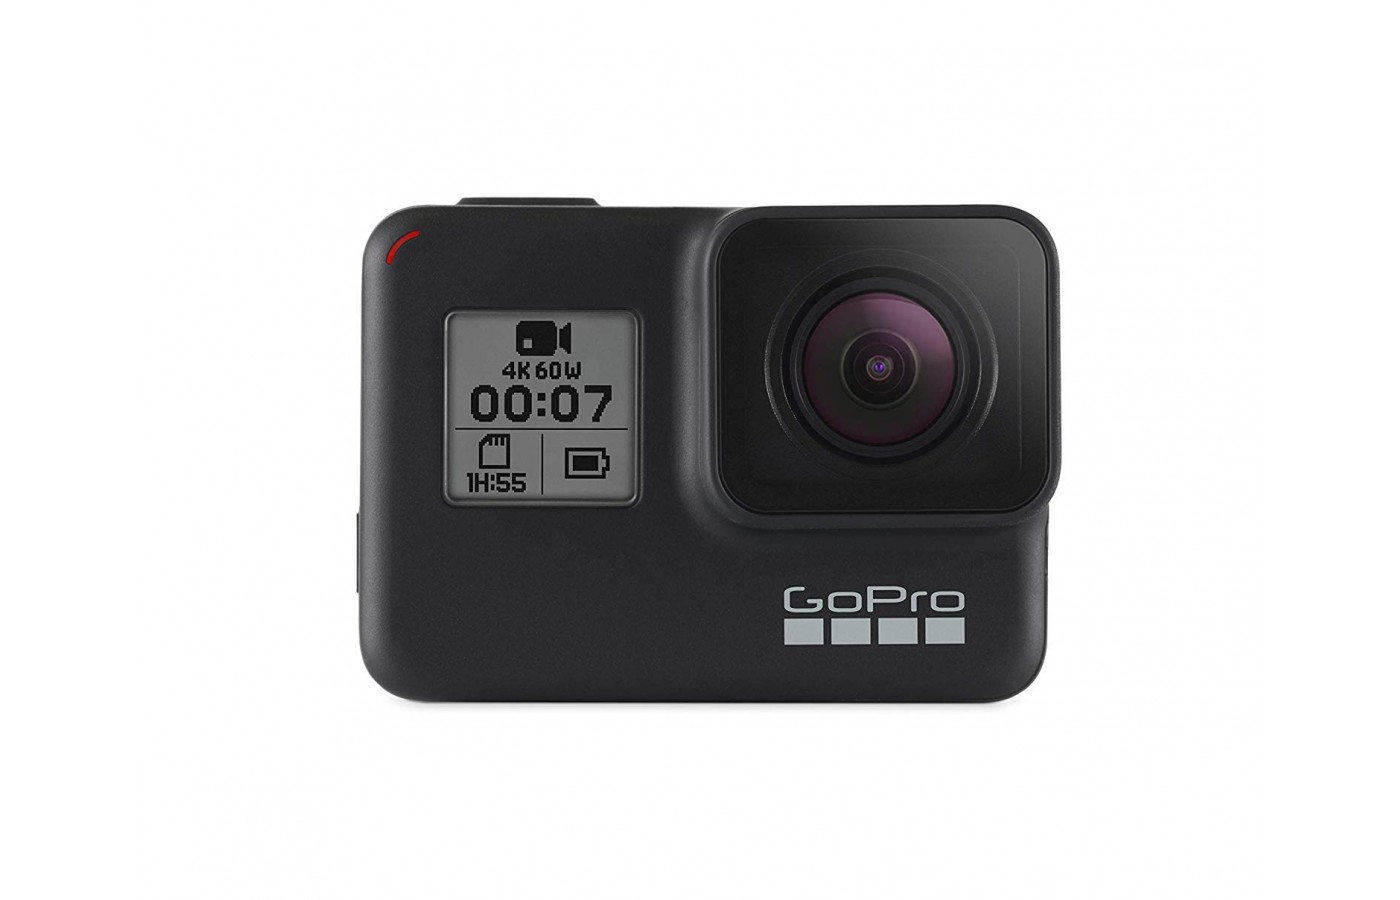 GoPro's new flagship star action range Hero 7 replaces the excellent 2017 Hero 6.